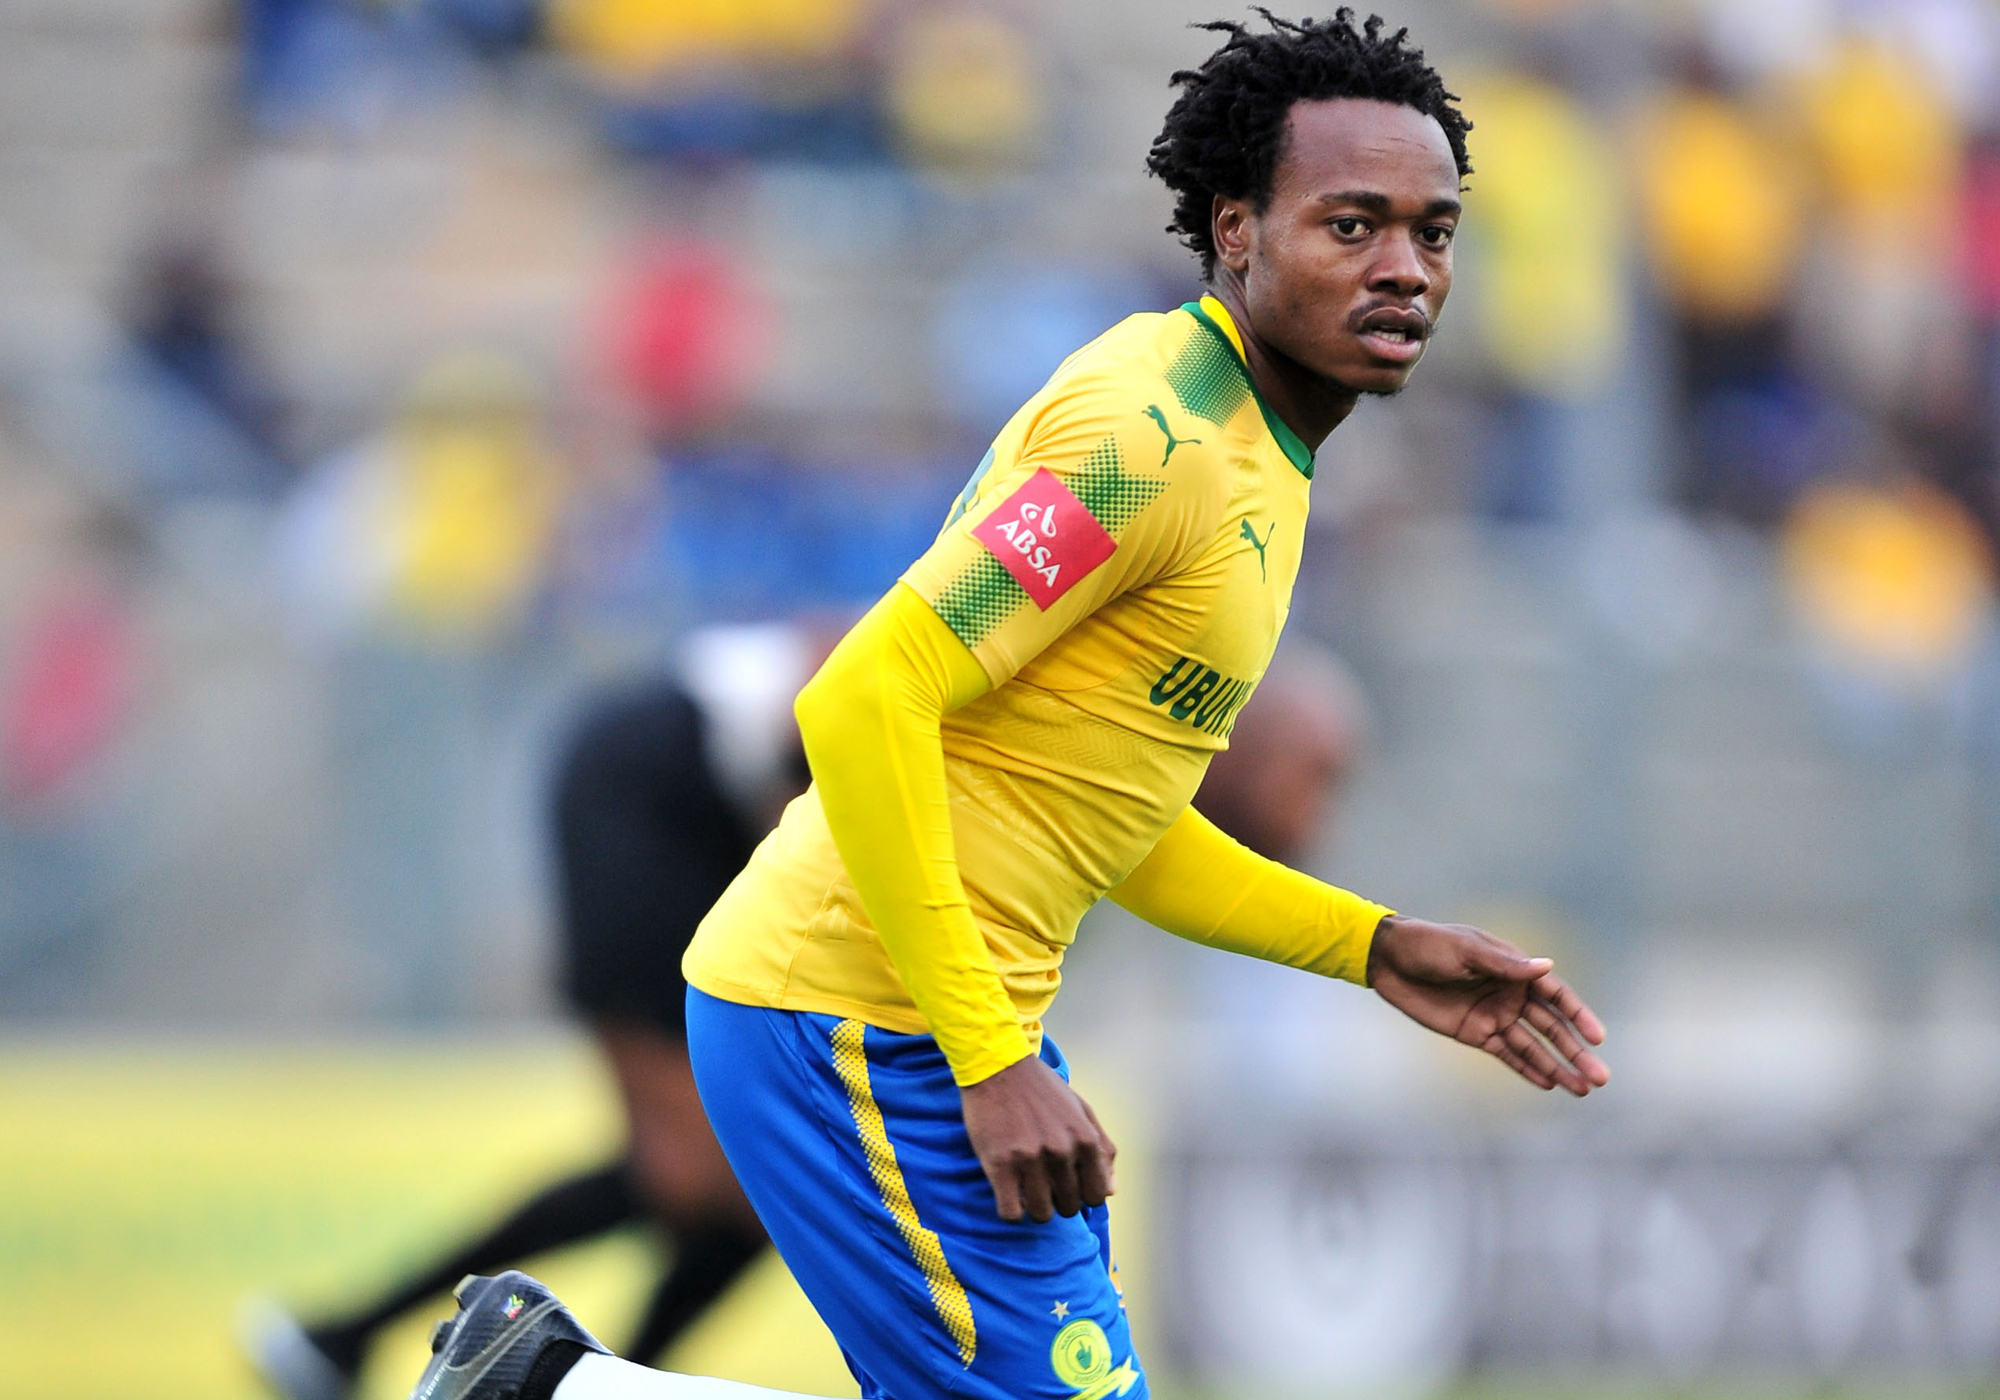 Watch Percy Tau score his first goal in European competition